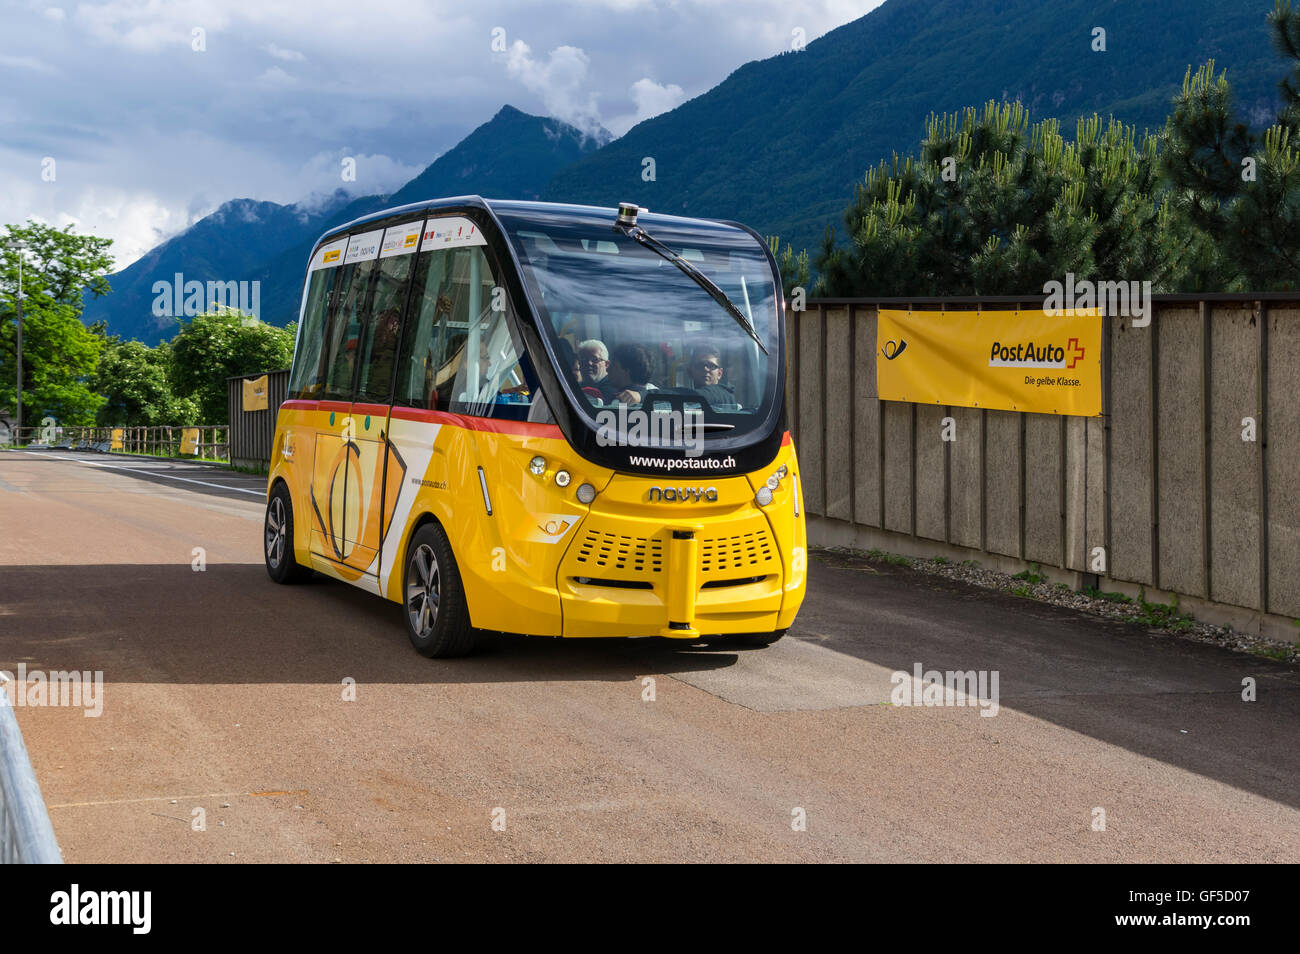 Autonomously driving electric minibus NAVYA ARMA in yellow livery operated by Postauto in Switzerland under the - Stock Image